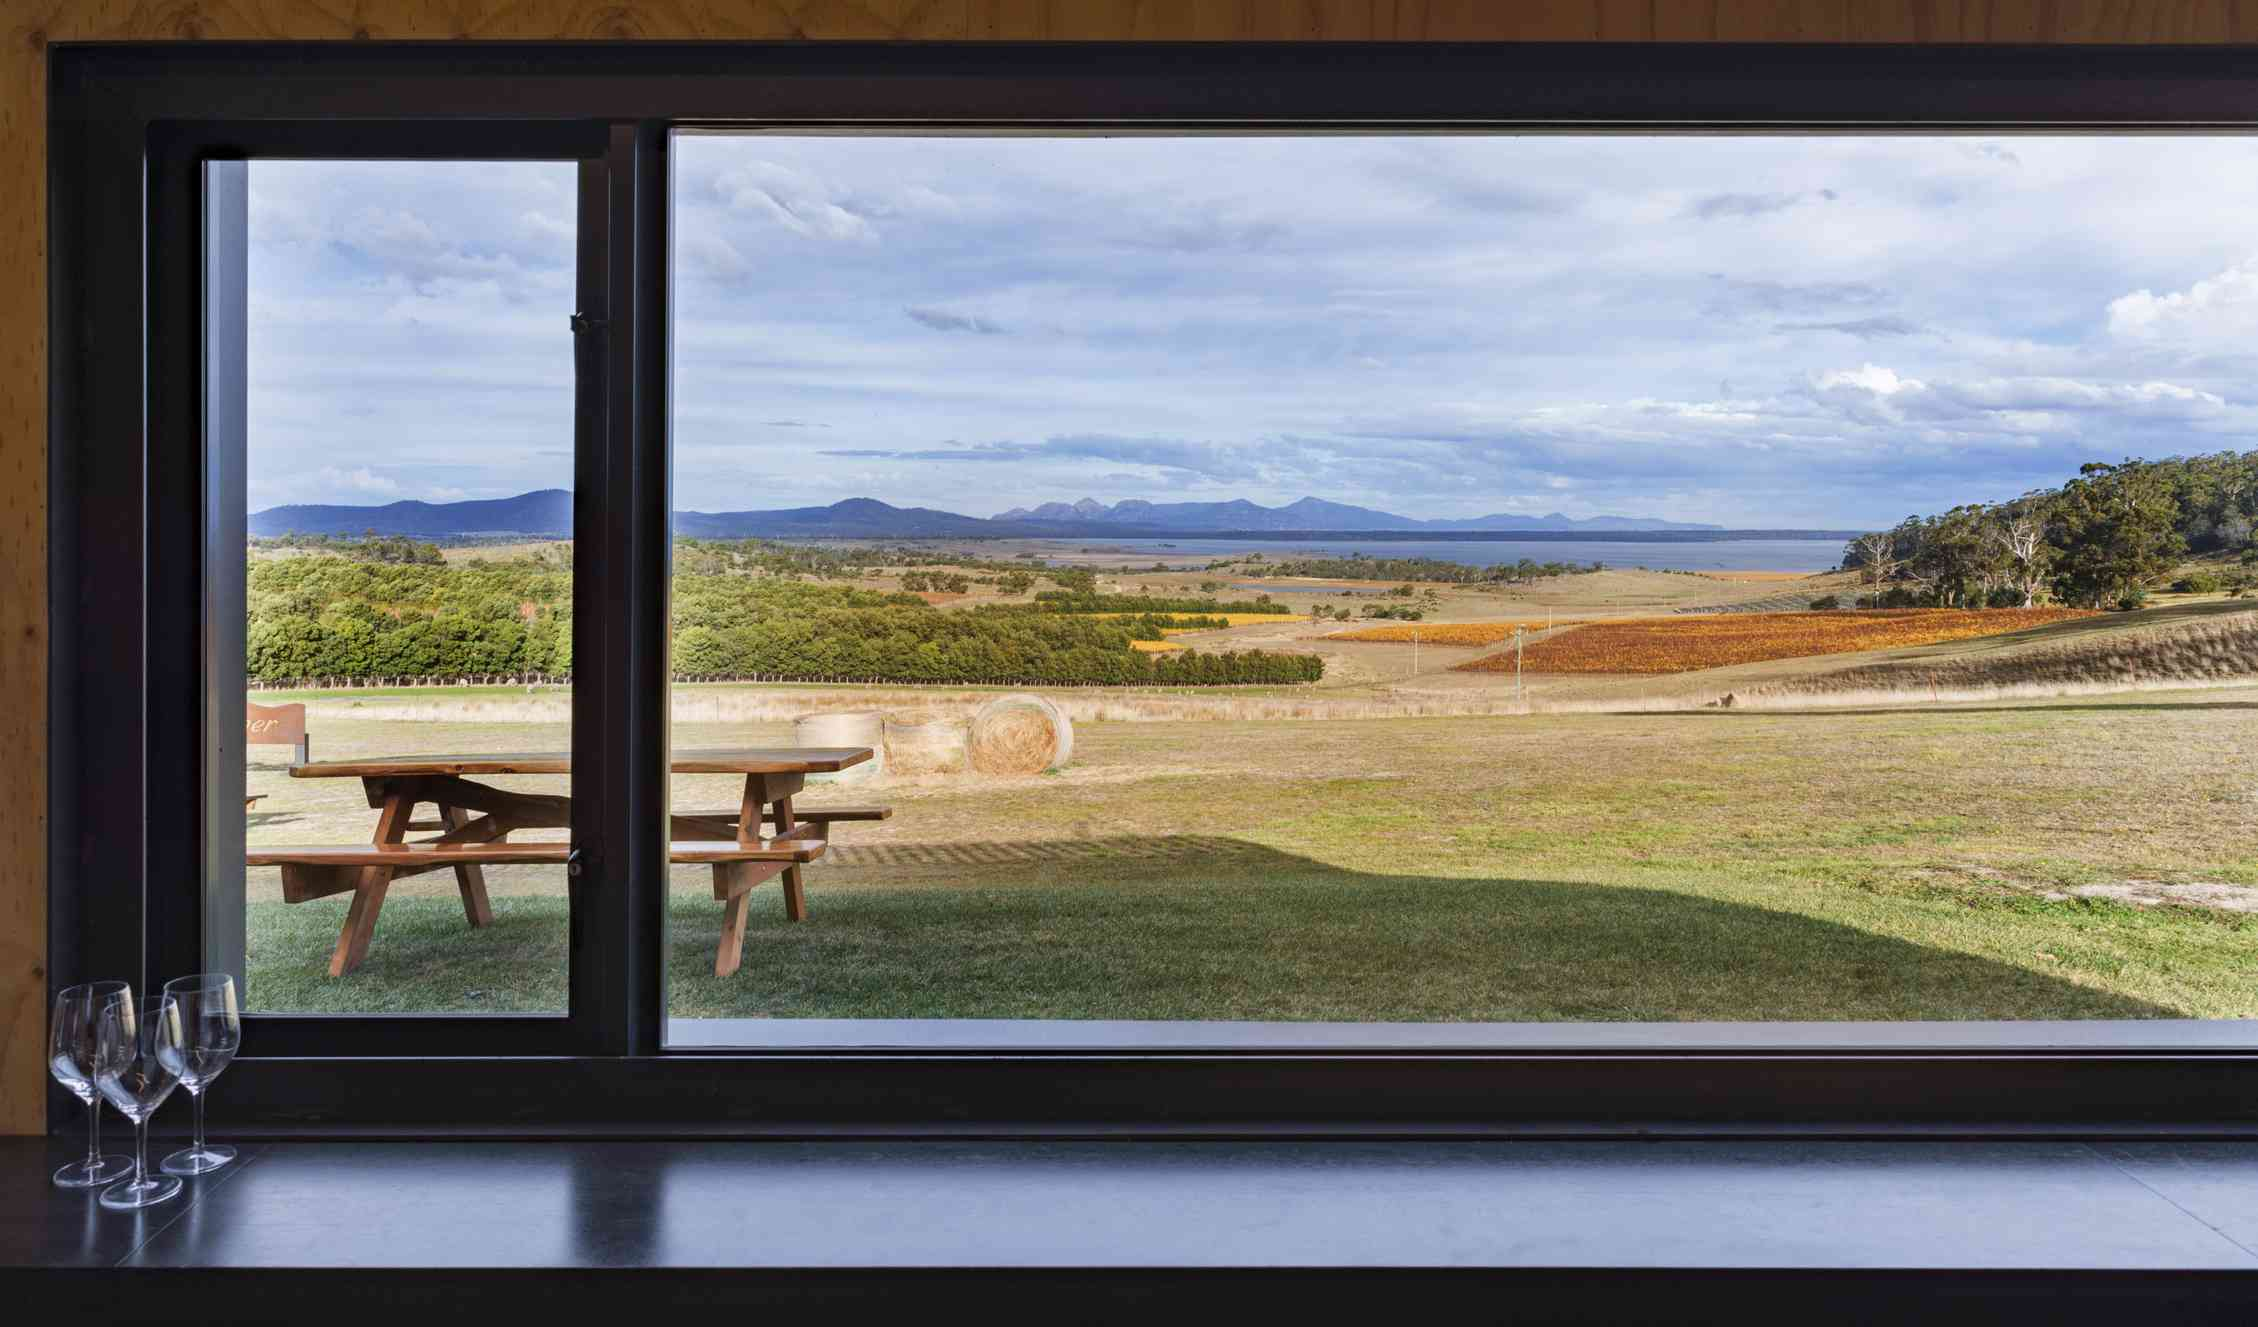 Cellar door with views over nearby lake and mountains